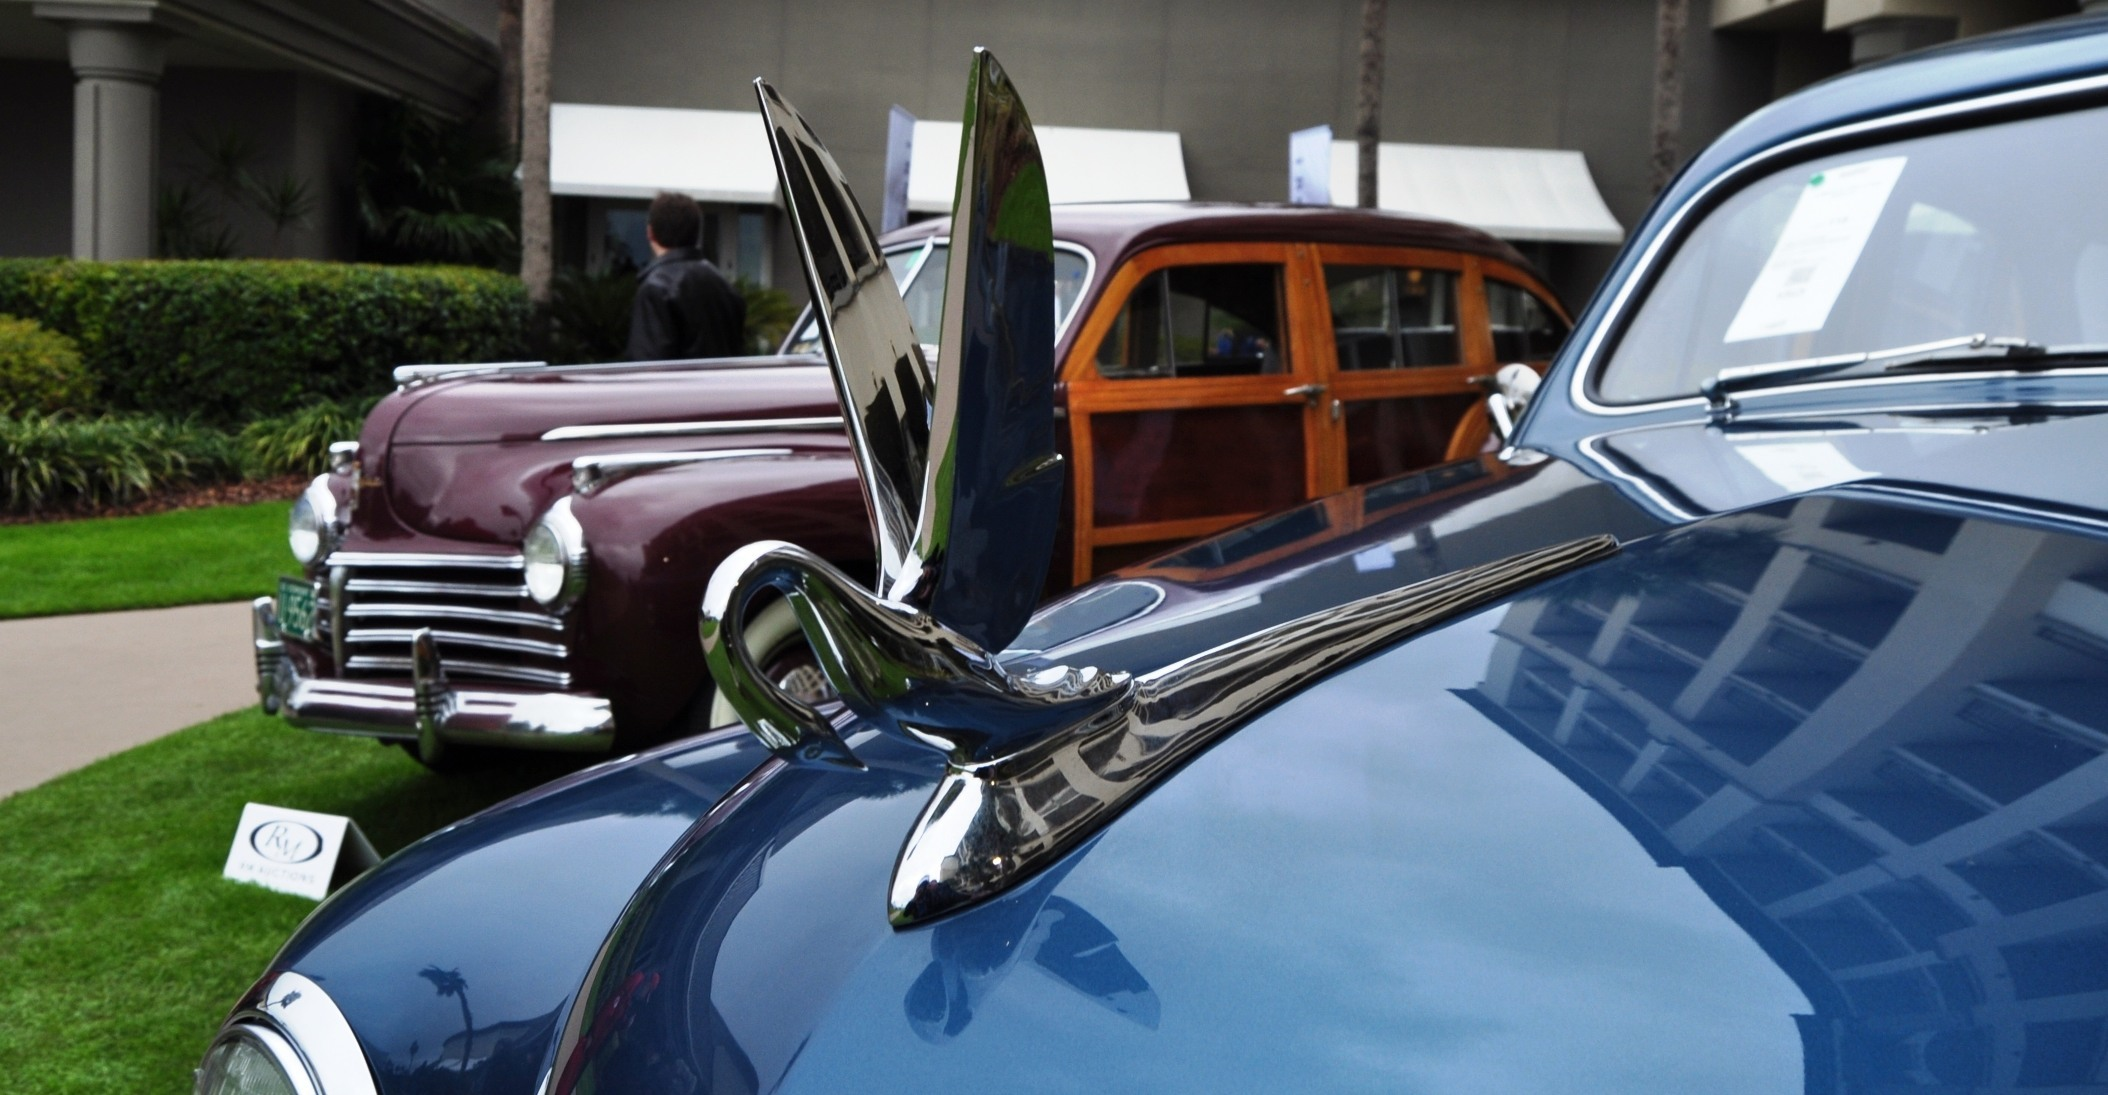 Coolest Vintage Hood Ornaments -- RM Auctions Amelia Island 2014 -- Pierce-Arrow, Cadillac, Stutz, Chrysler, Ford, Aston-Martin, Bentley and More 47